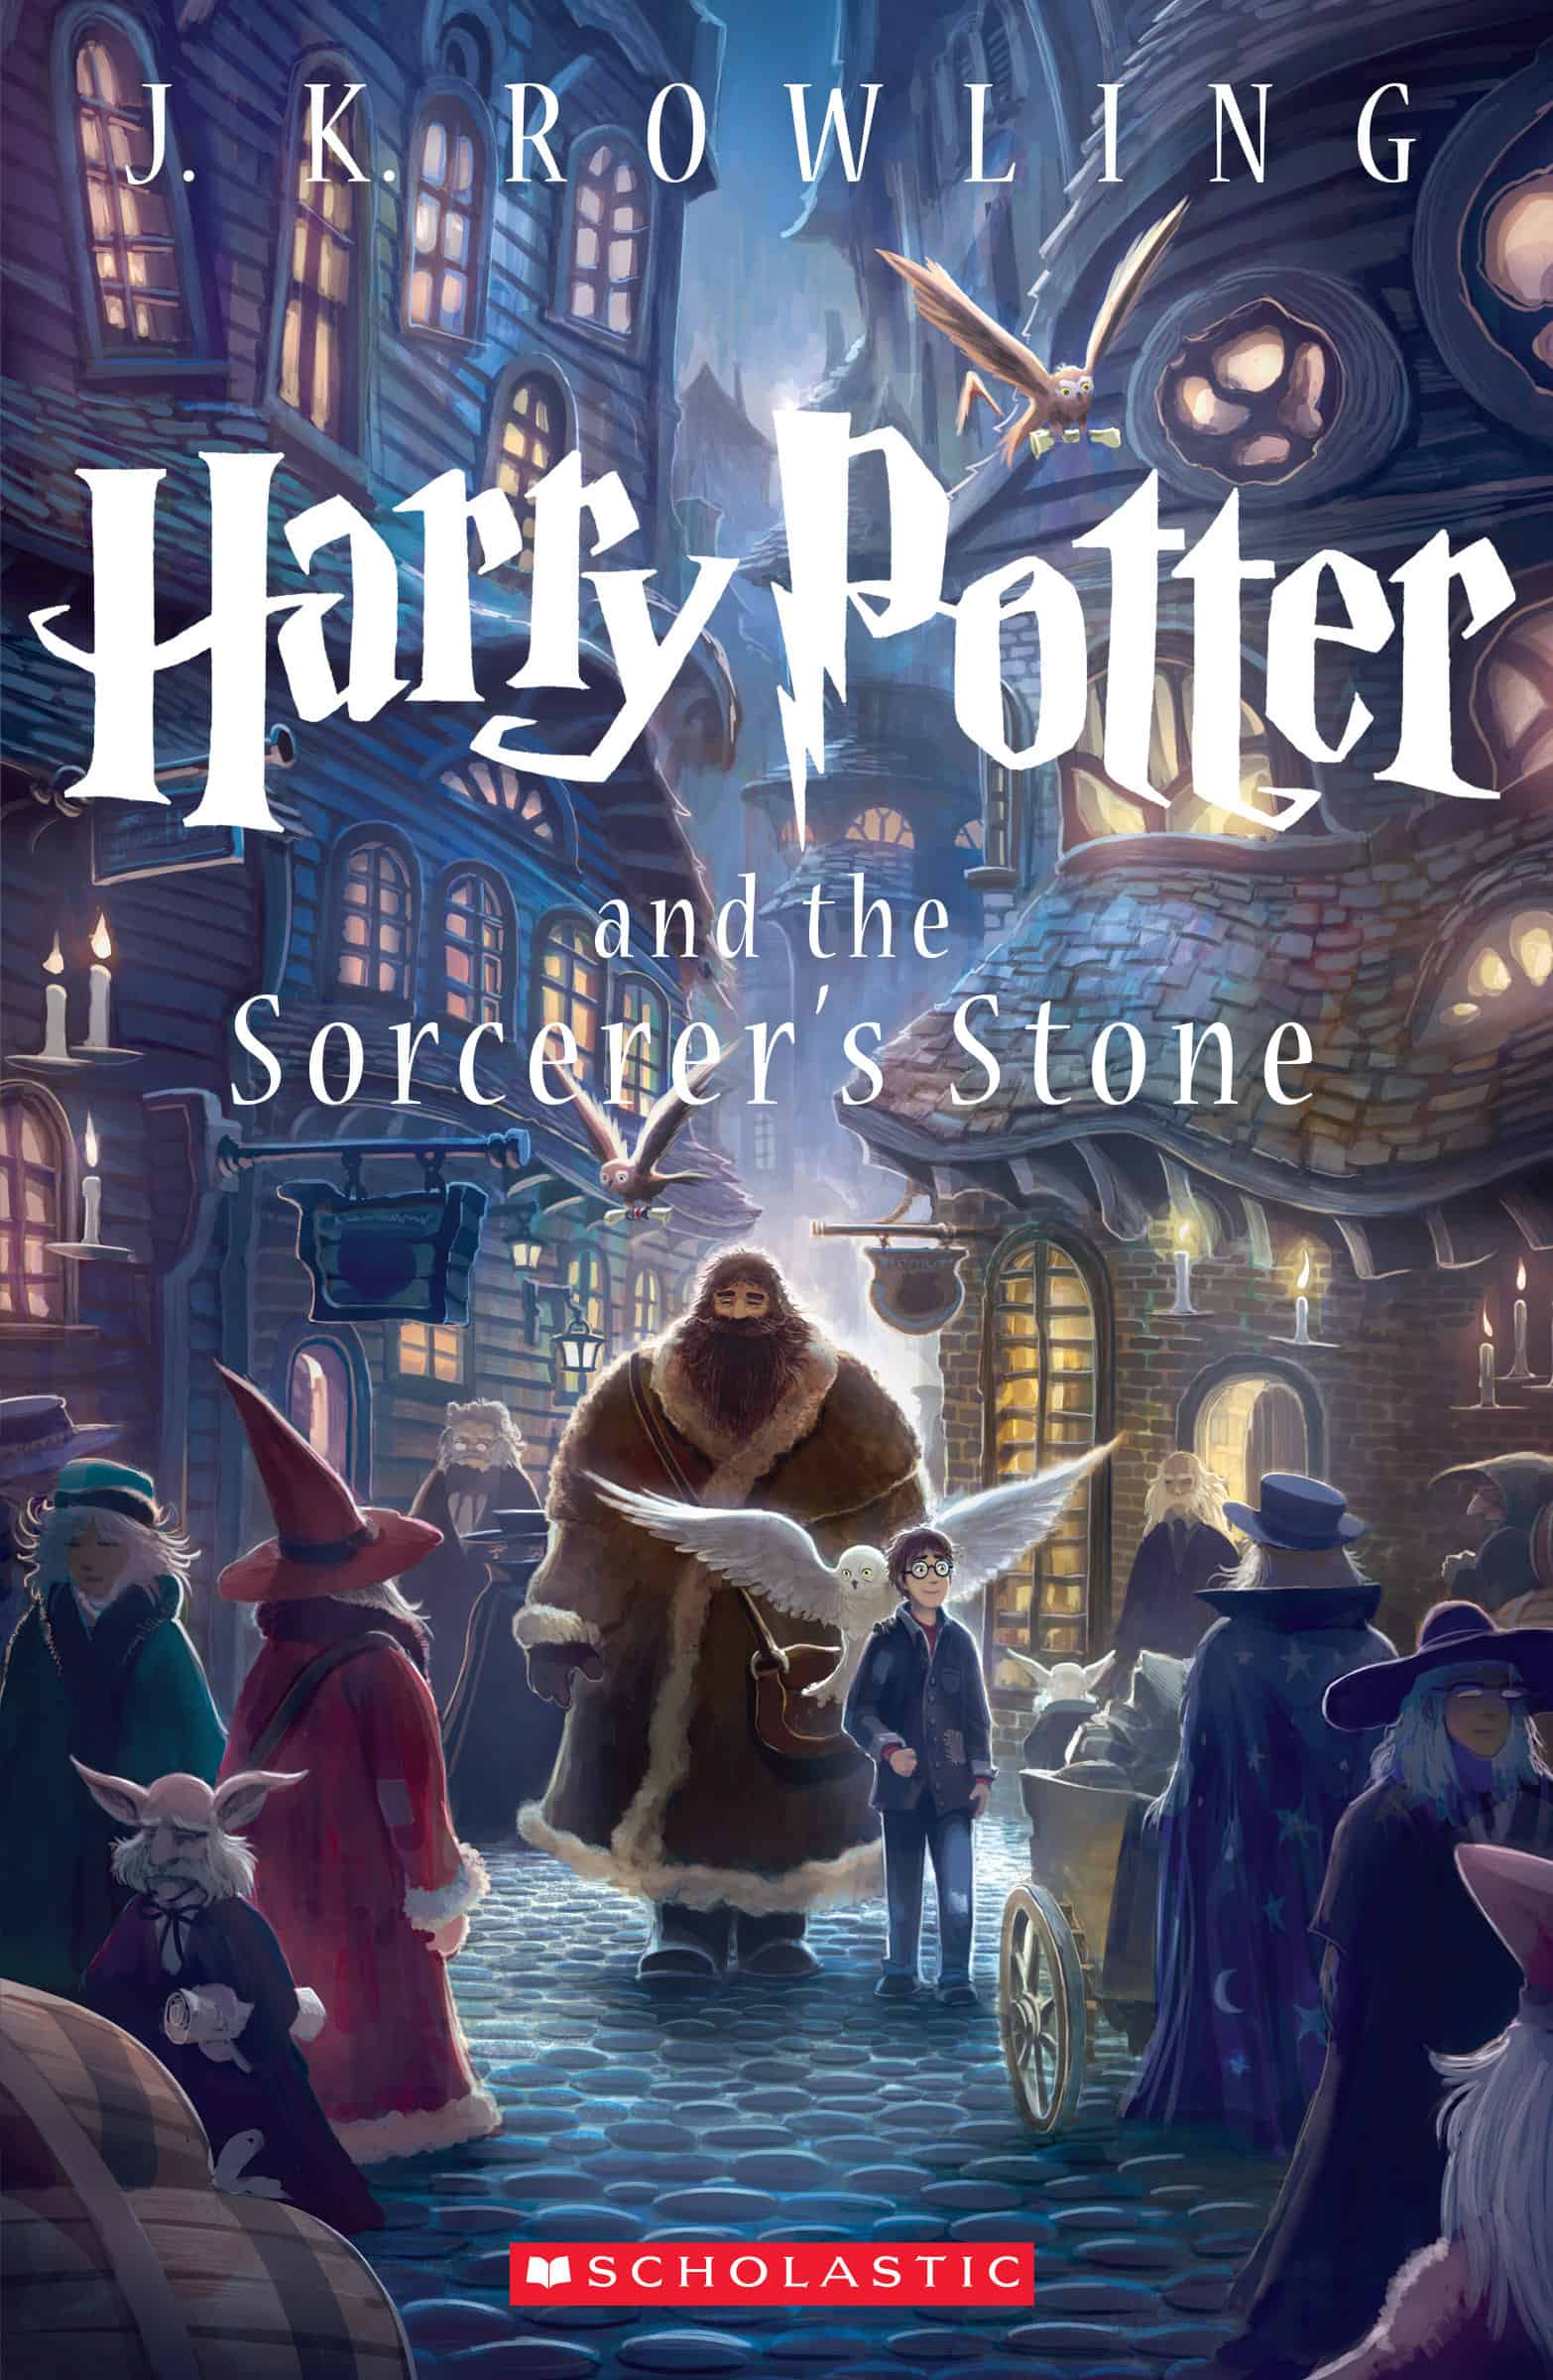 Harry Potter and the Sorcerer's Stone Books to Read